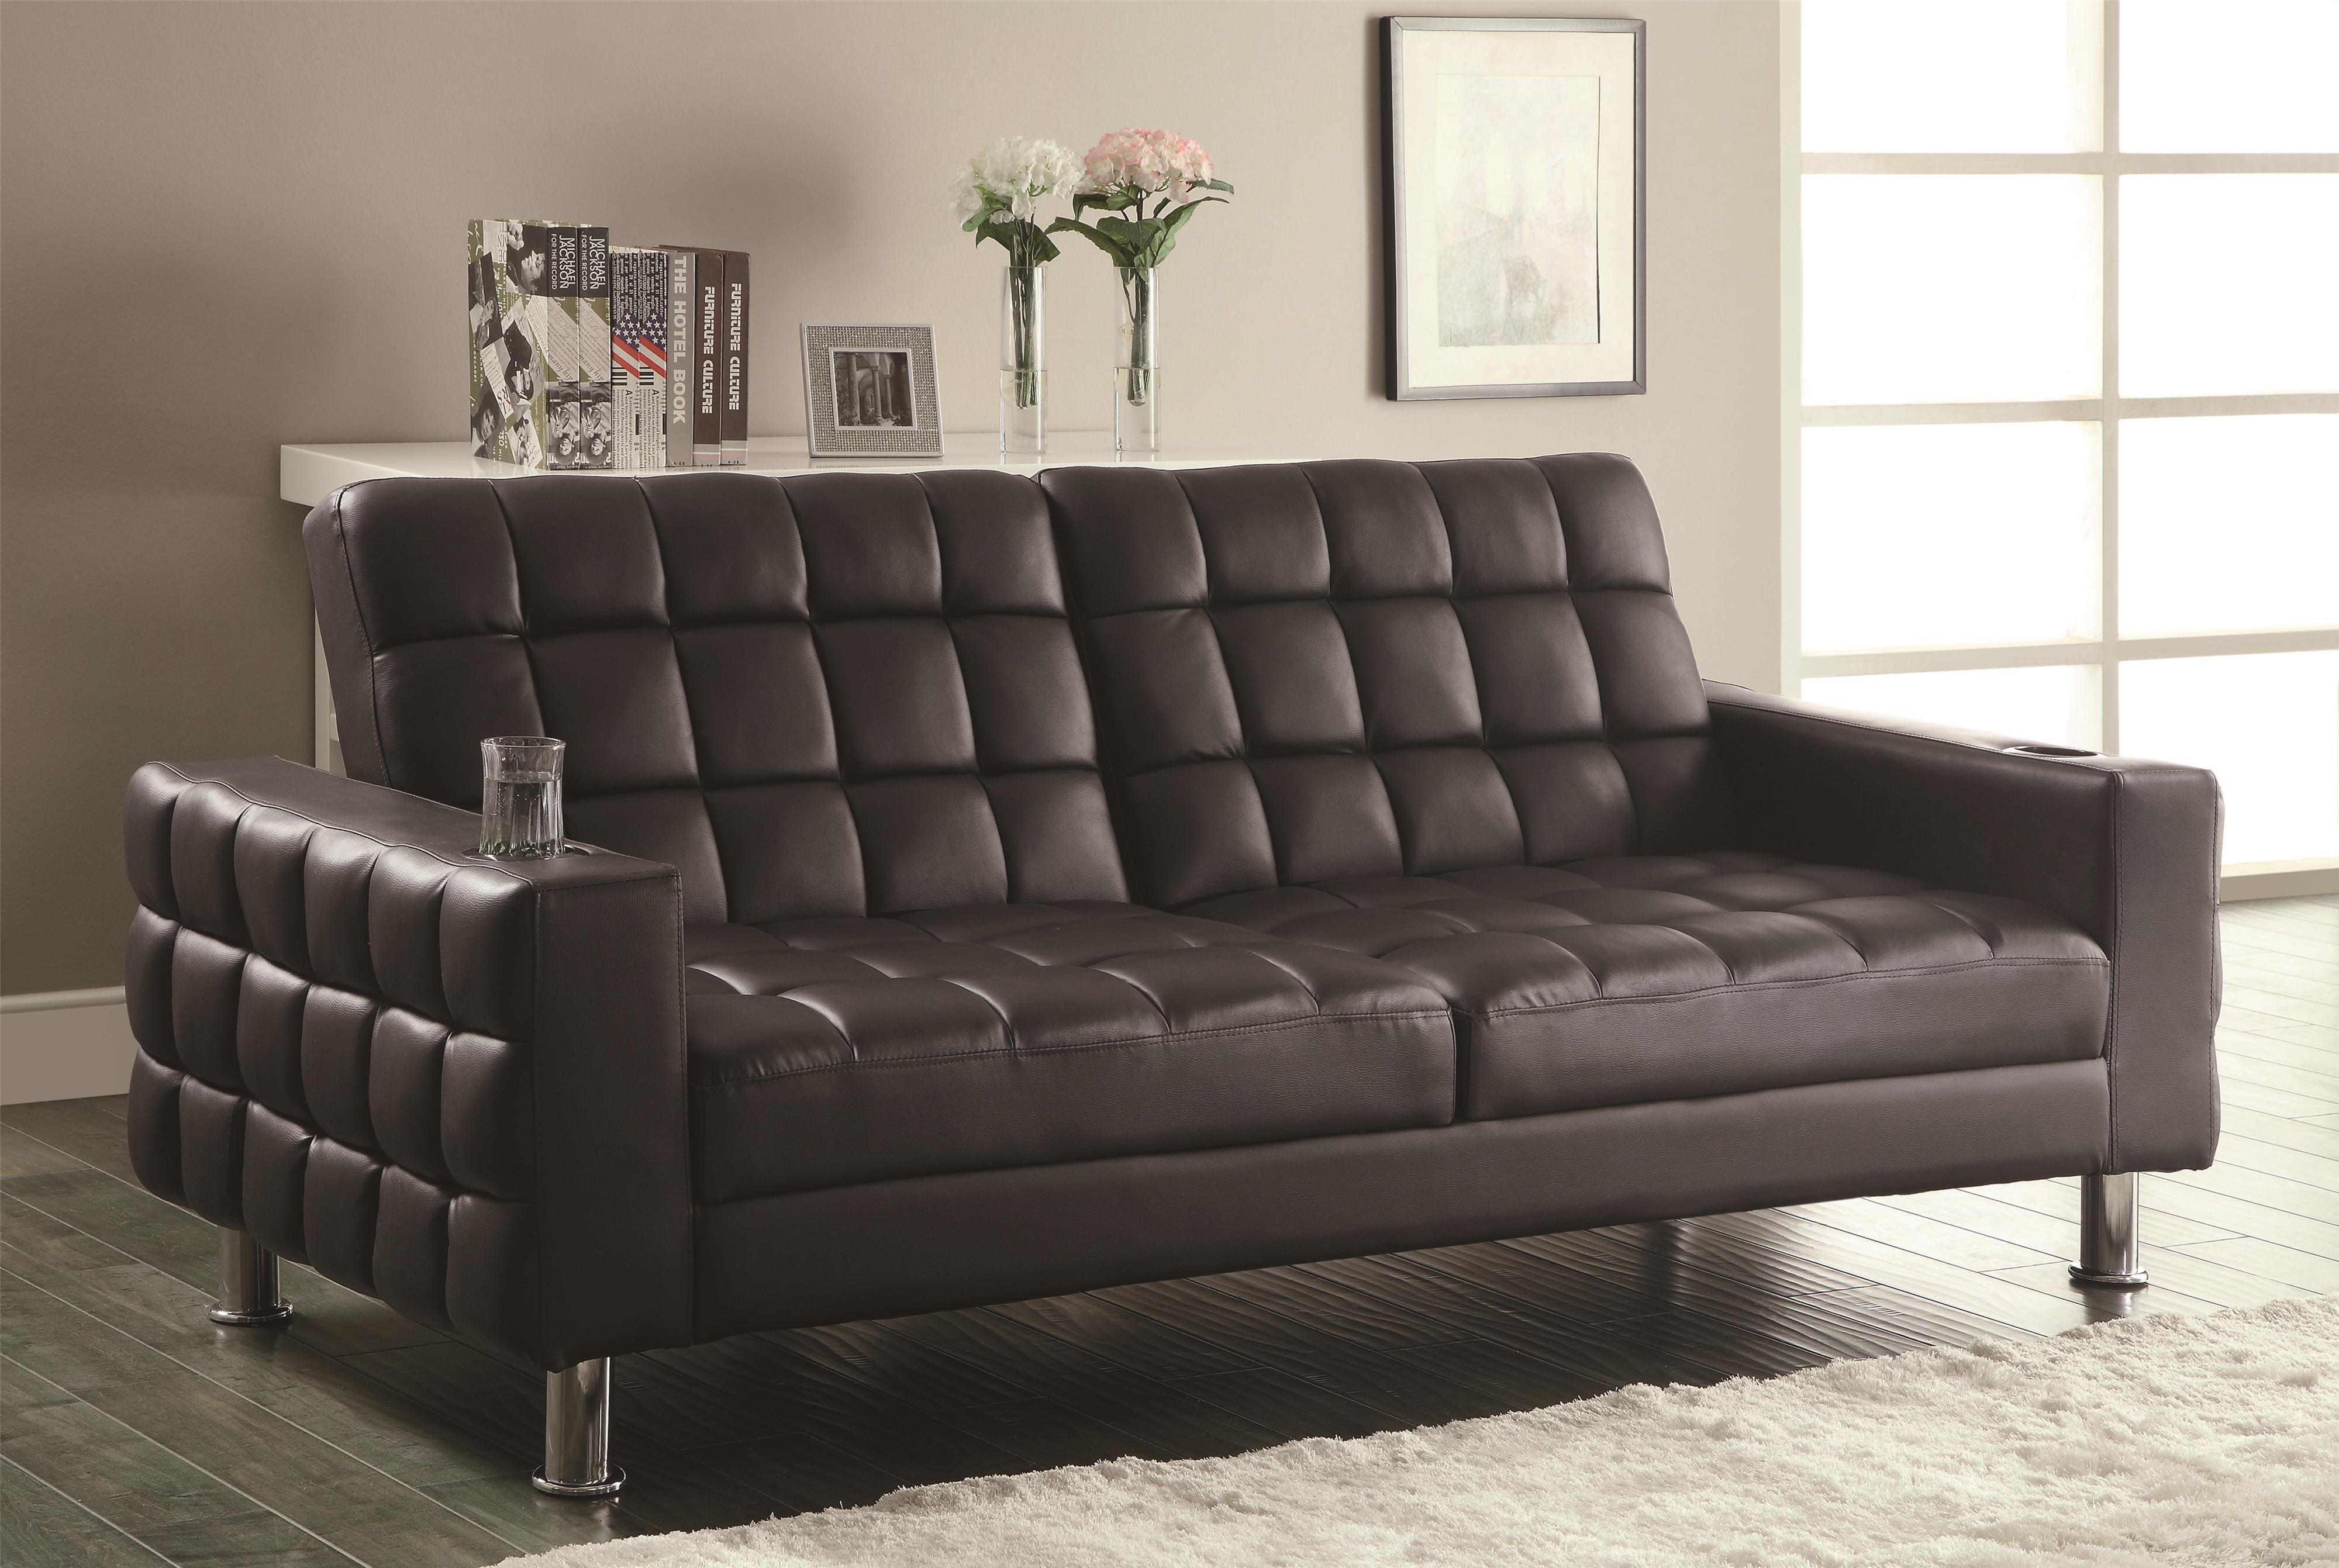 sofa accessories names traditional looking beds coaster and futons adjustable bed with cup